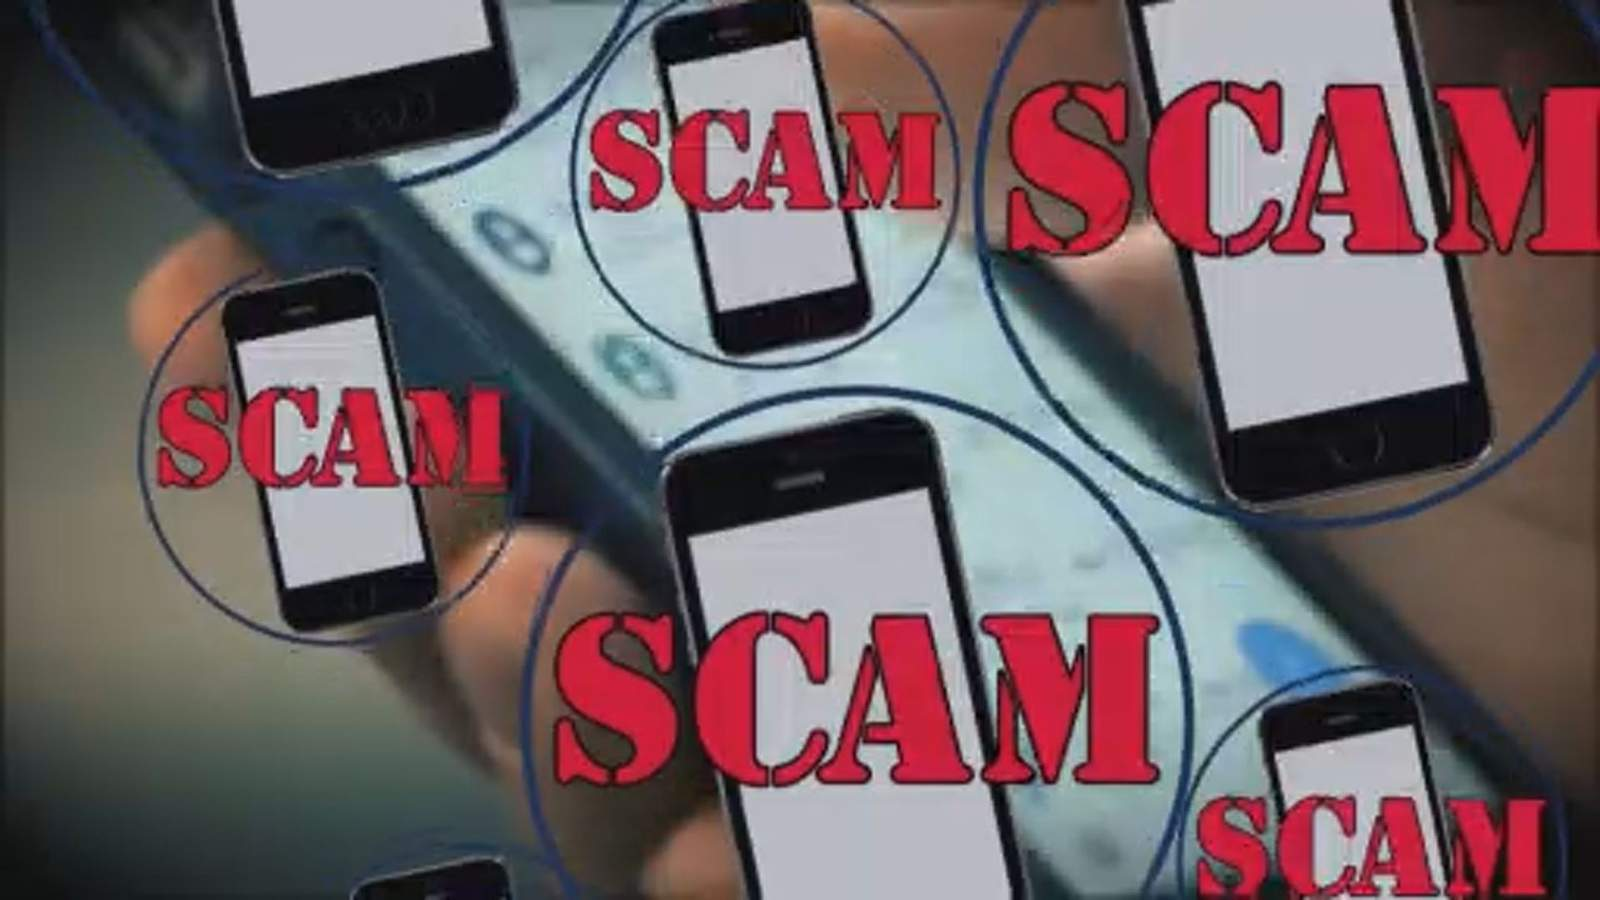 'Do Not Call' registry and 4 apps to stop spoofing calls